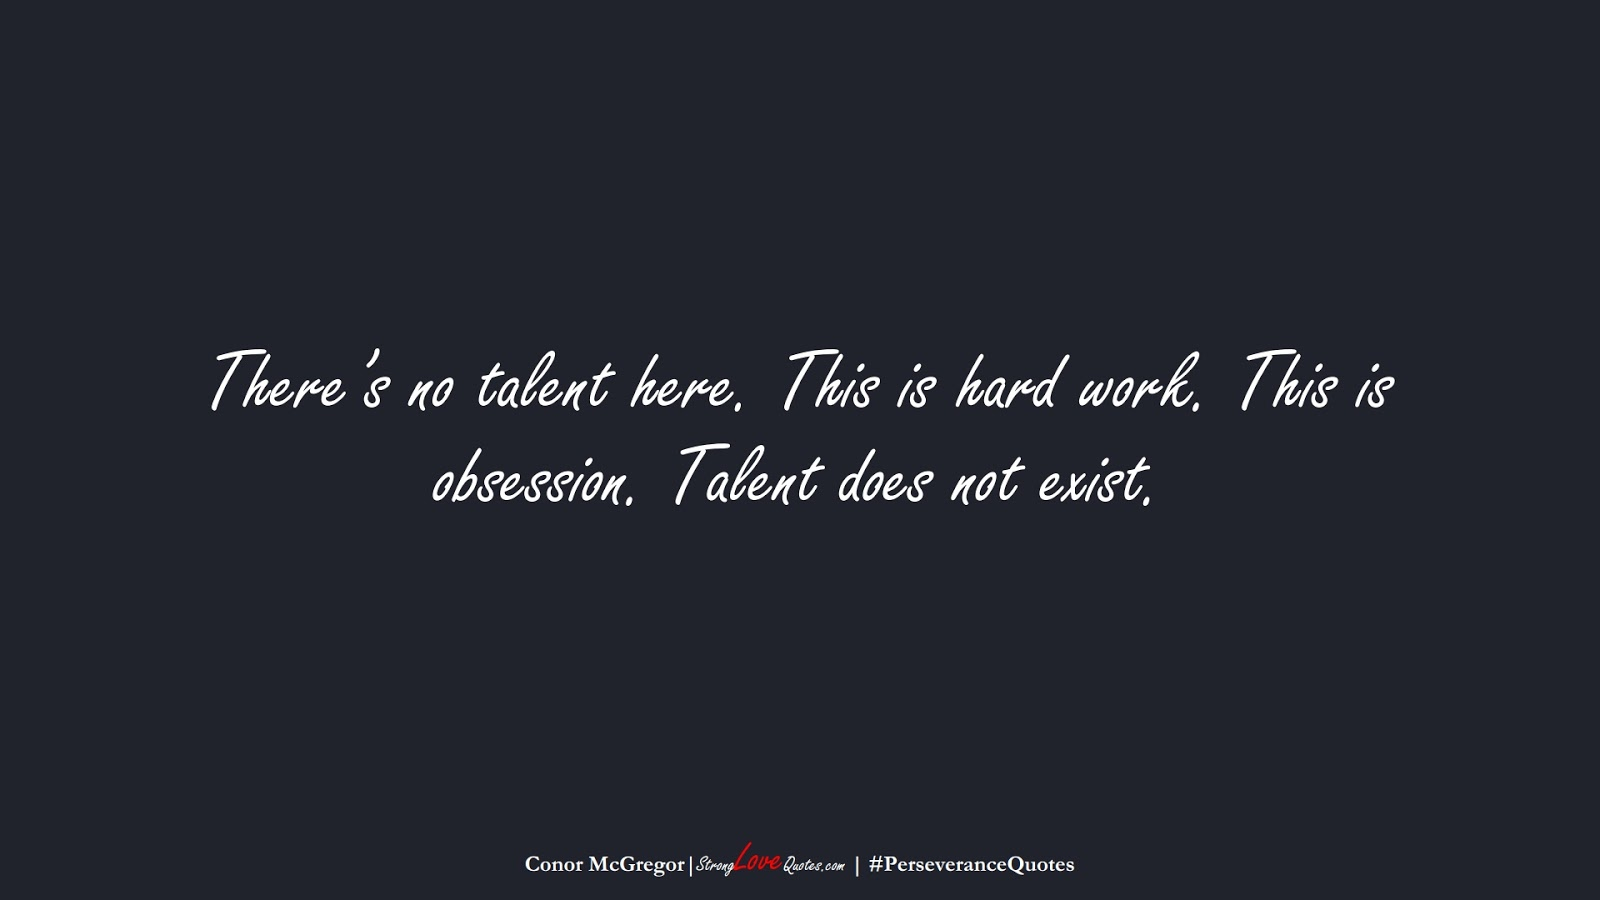 There's no talent here. This is hard work. This is obsession. Talent does not exist. (Conor McGregor);  #PerseveranceQuotes